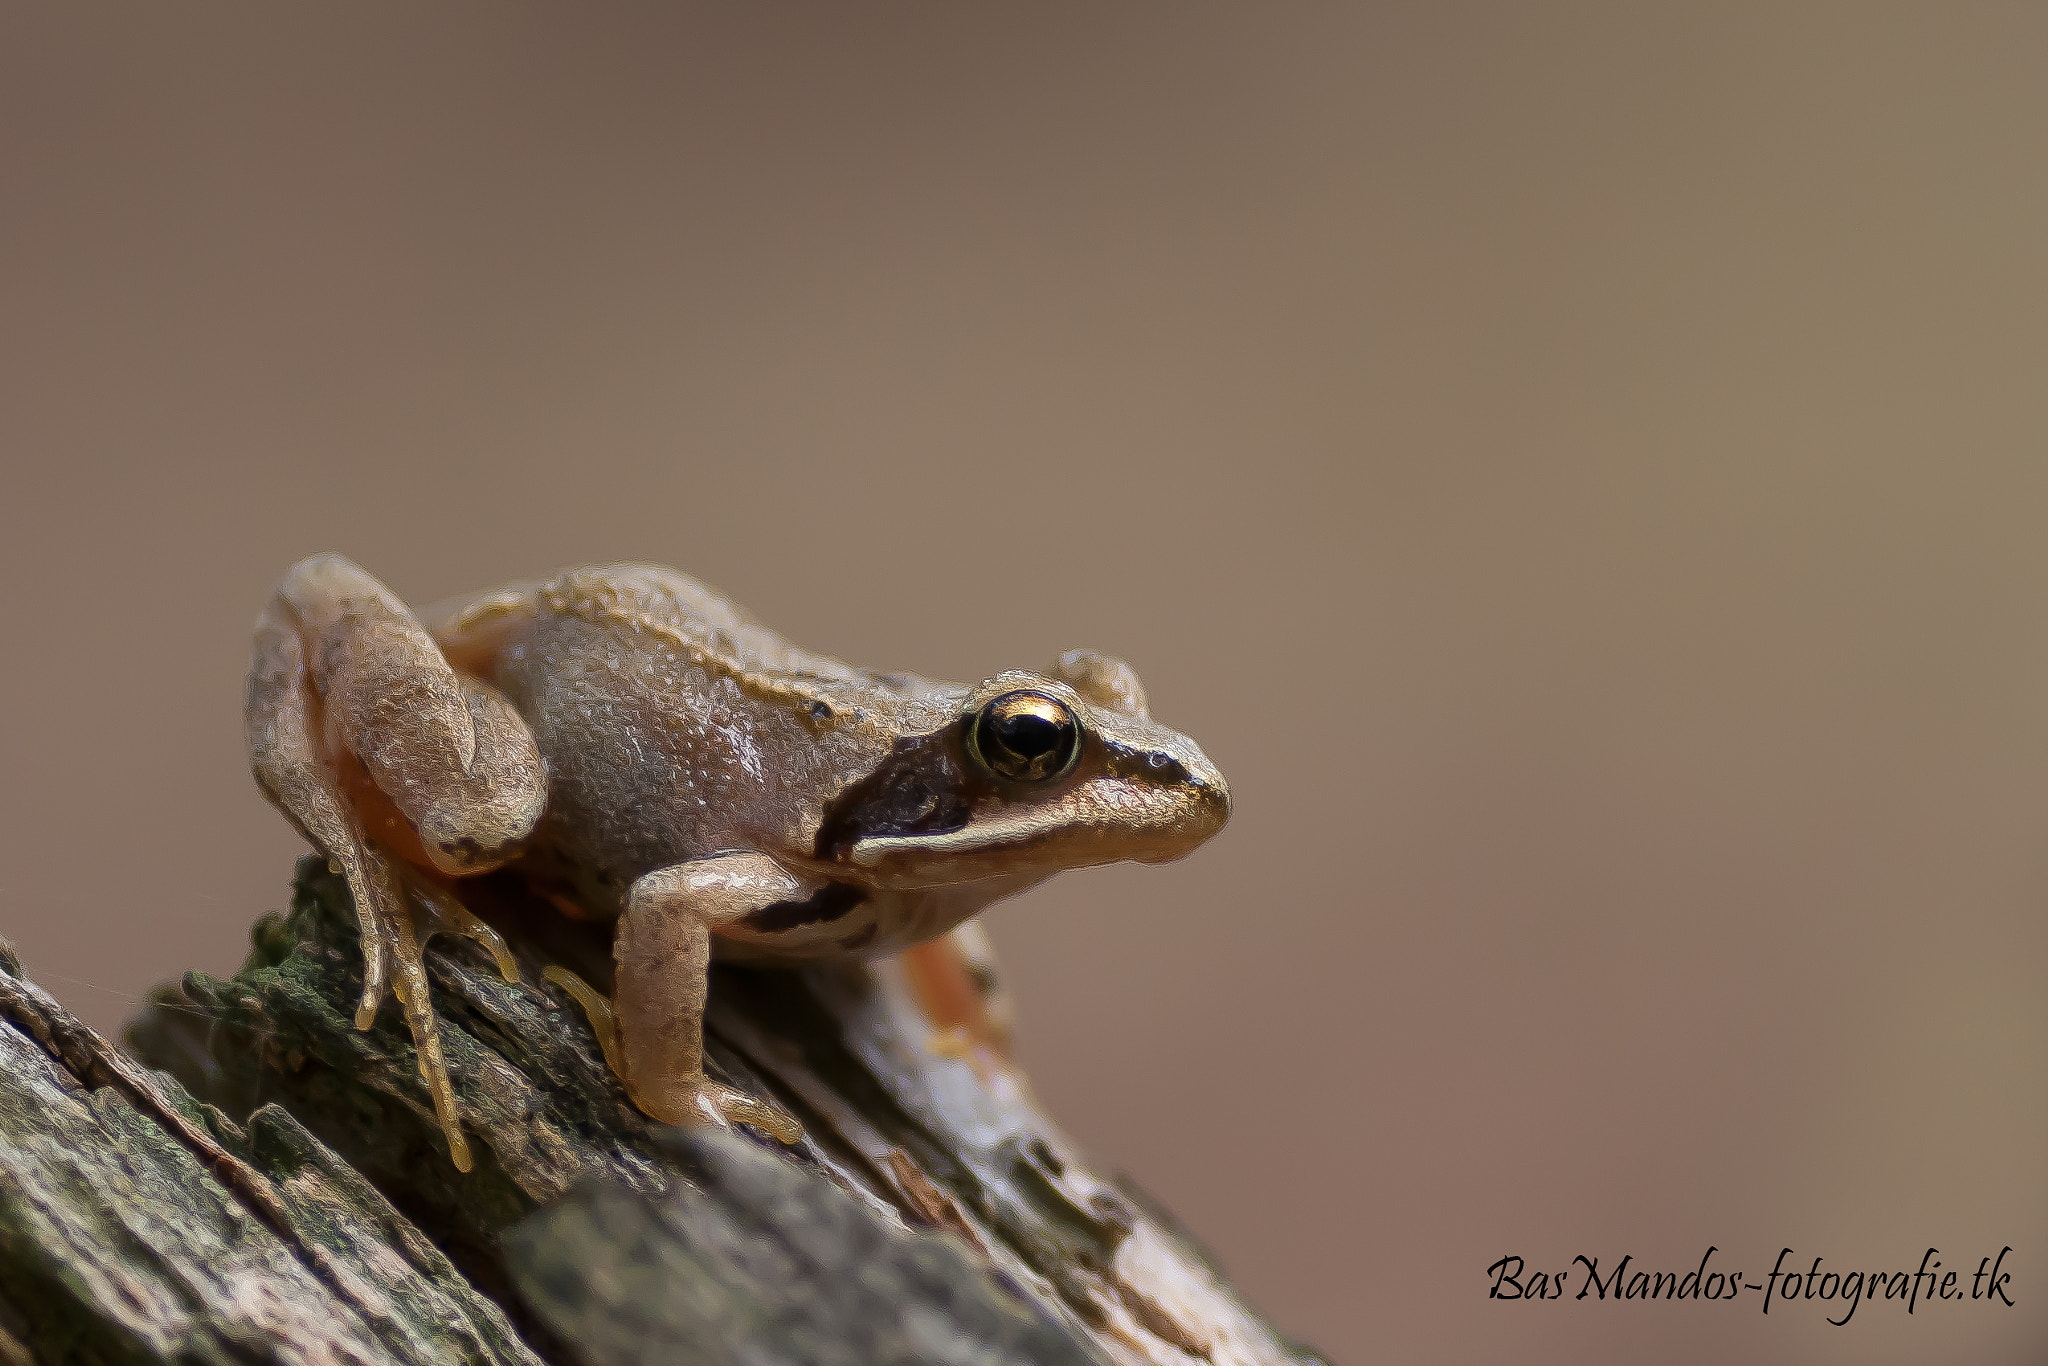 Photograph Frog.. by Bas Mandos on 500px